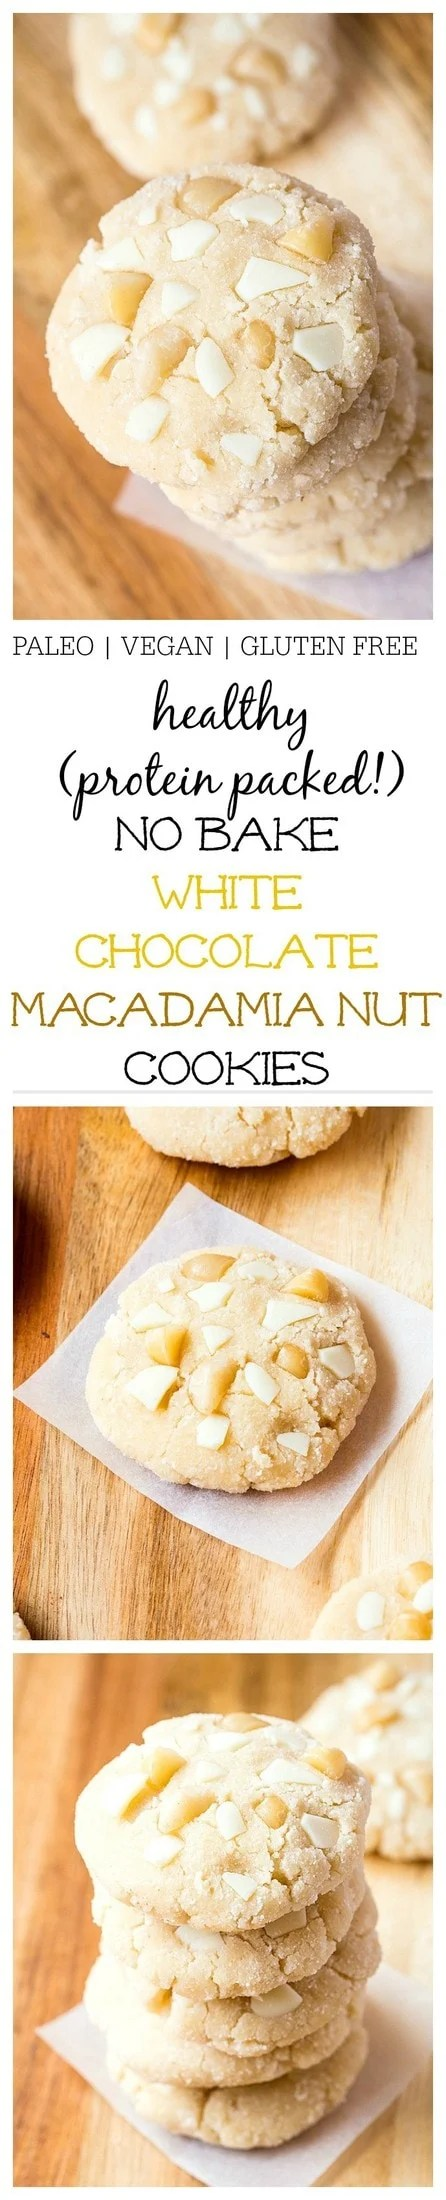 Healthy No Bake White Chocolate Macadamia Nut Cookies- Inspired by Subway's infamous cookies, these healthy white chocolate macadamia nut cookies are fudgy, chewy and require no baking at all! 1 bowl and 10 minutes is all you'll need to whip these beauties up which are paleo, vegan, gluten free, dairy free AND come with a high protein option! @thebigmansworld - thebigmansworld.com